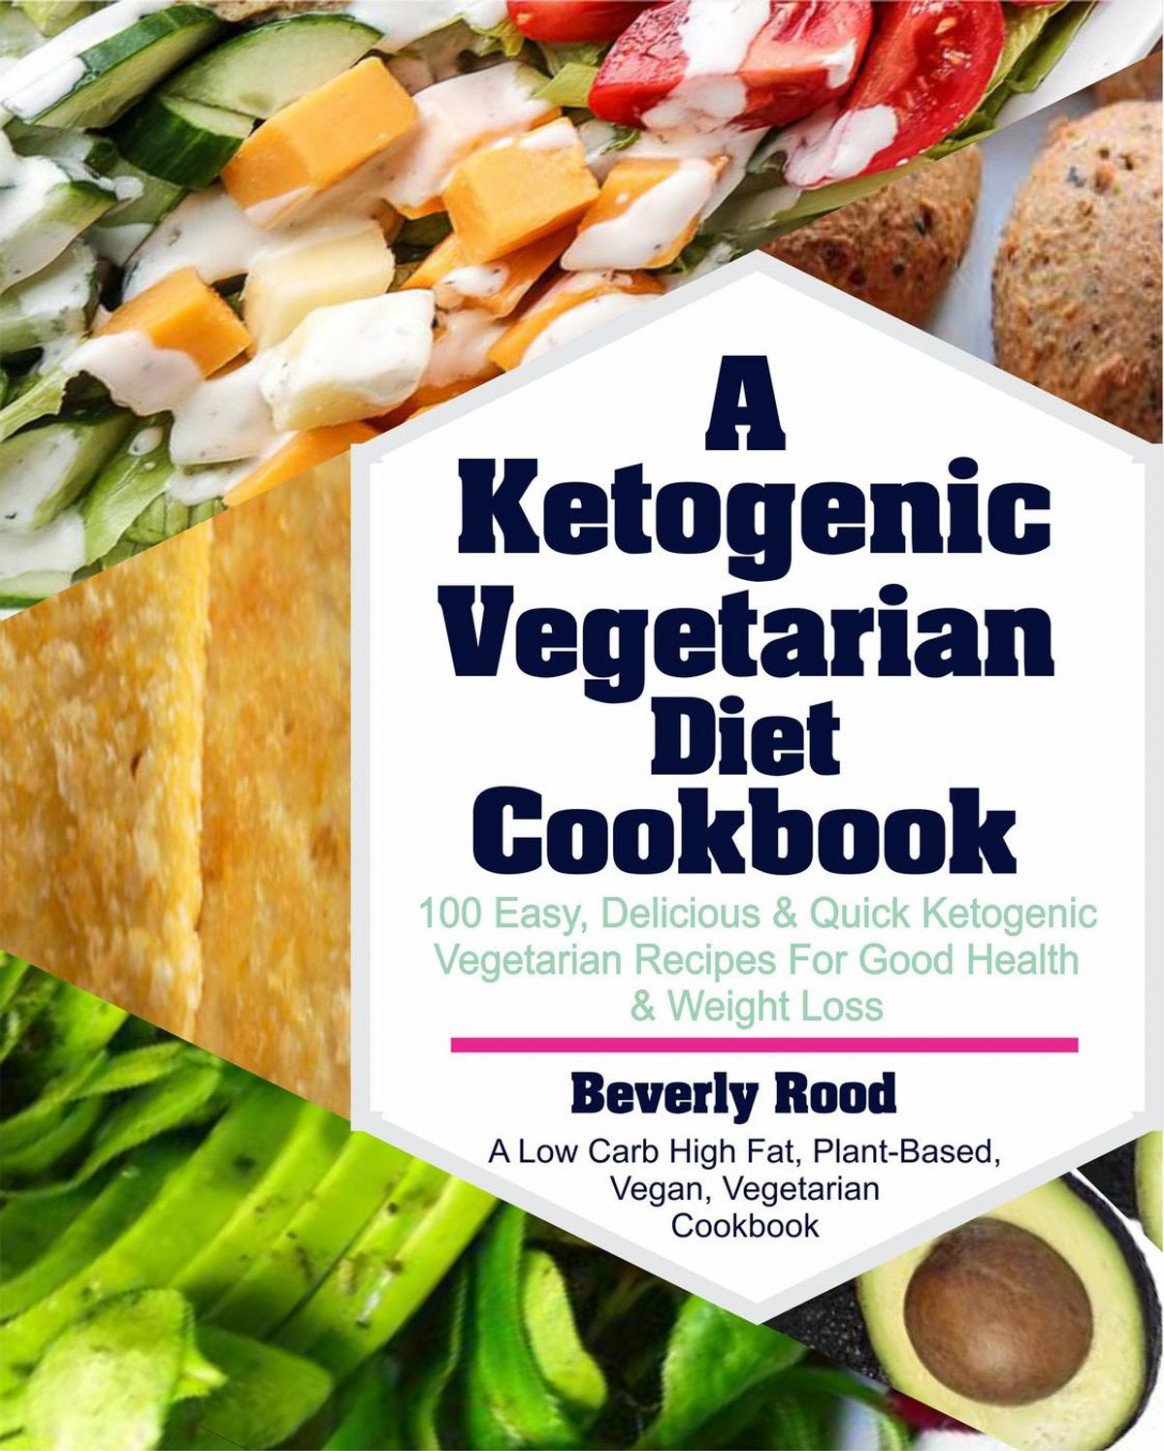 Ketogenic Vegetarian Diet Cookbook: 12 Easy, Delicious and Quick Ketogenic  Vegetarian Recipes For Good Health and Weight Loss (A Low Carb High Fat, ..